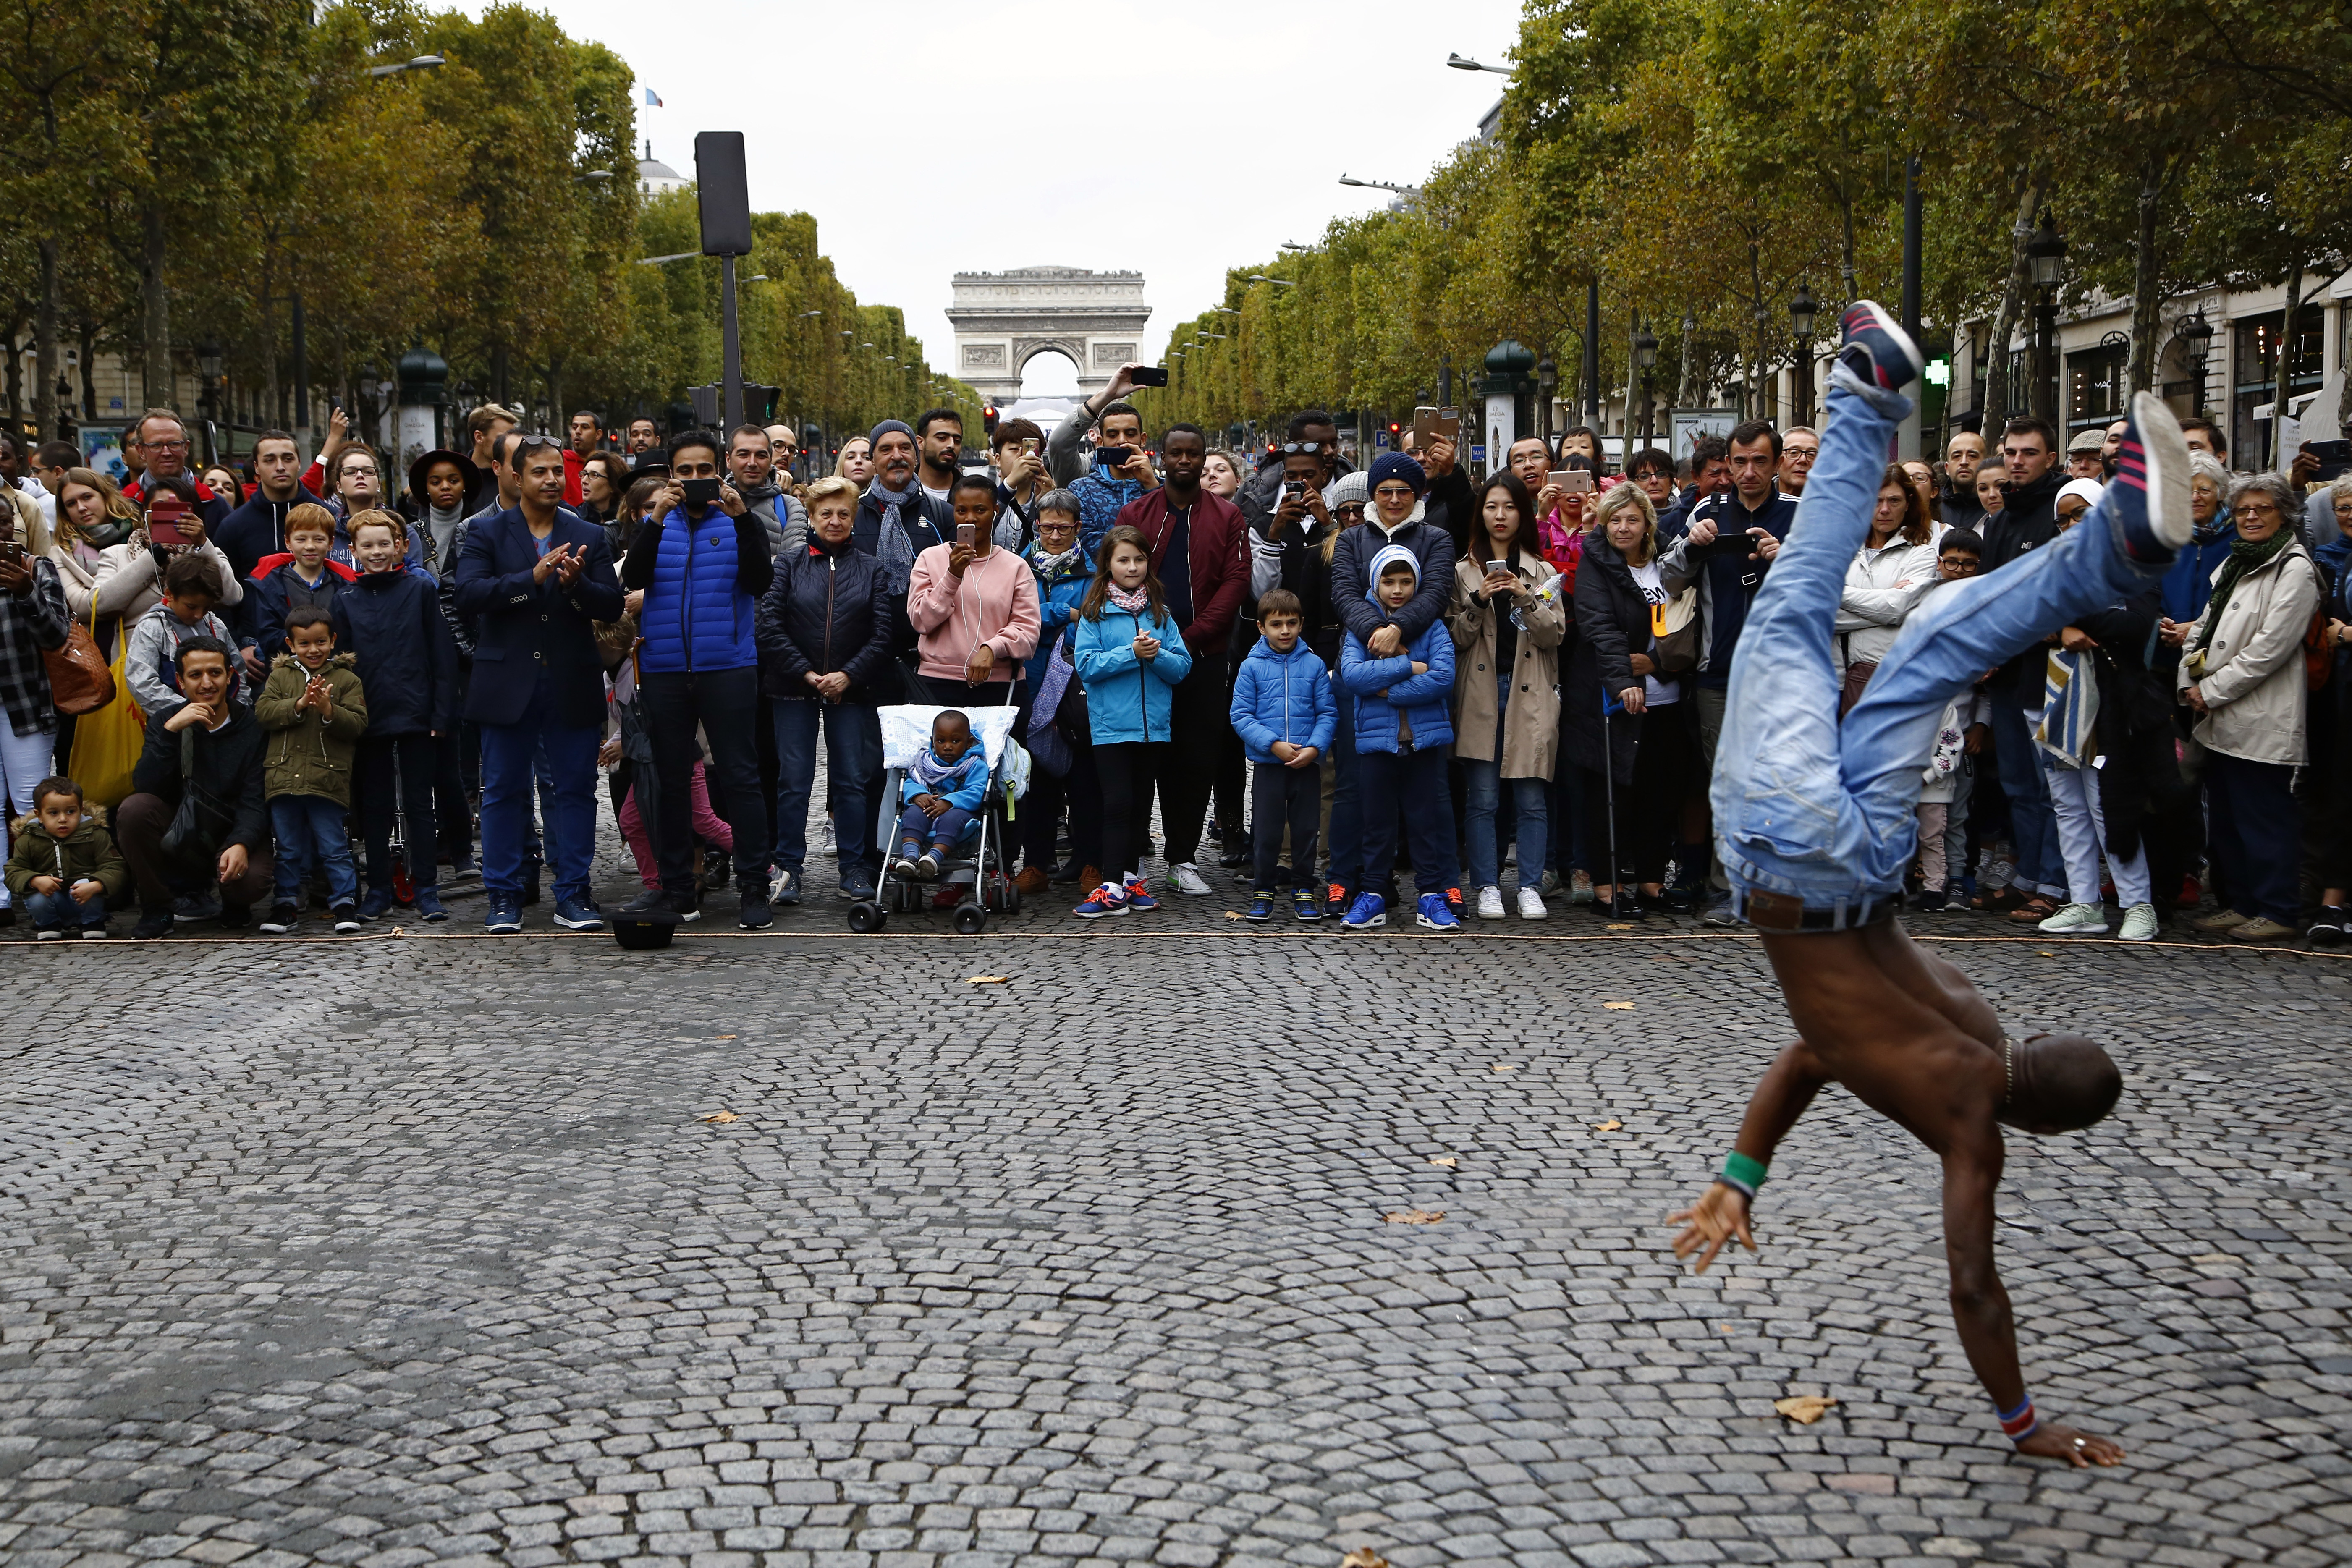 """France Banning Cars FILE - In this Oct.1 2017 file photo, people watch a dancing performance on the champs Elysees avenue during the """"day without cars"""", in Paris. In its latest initiative to reduce pollution, Paris City Hall is planning to ban gas-powered cars by 2030. The controversial move follows Mayor Anne Hidalgo's plan to ban all diesel cars from the city by 2024, when Paris will host the Summer Olympics.(AP Photo/Thiabult Camus, FILE)"""